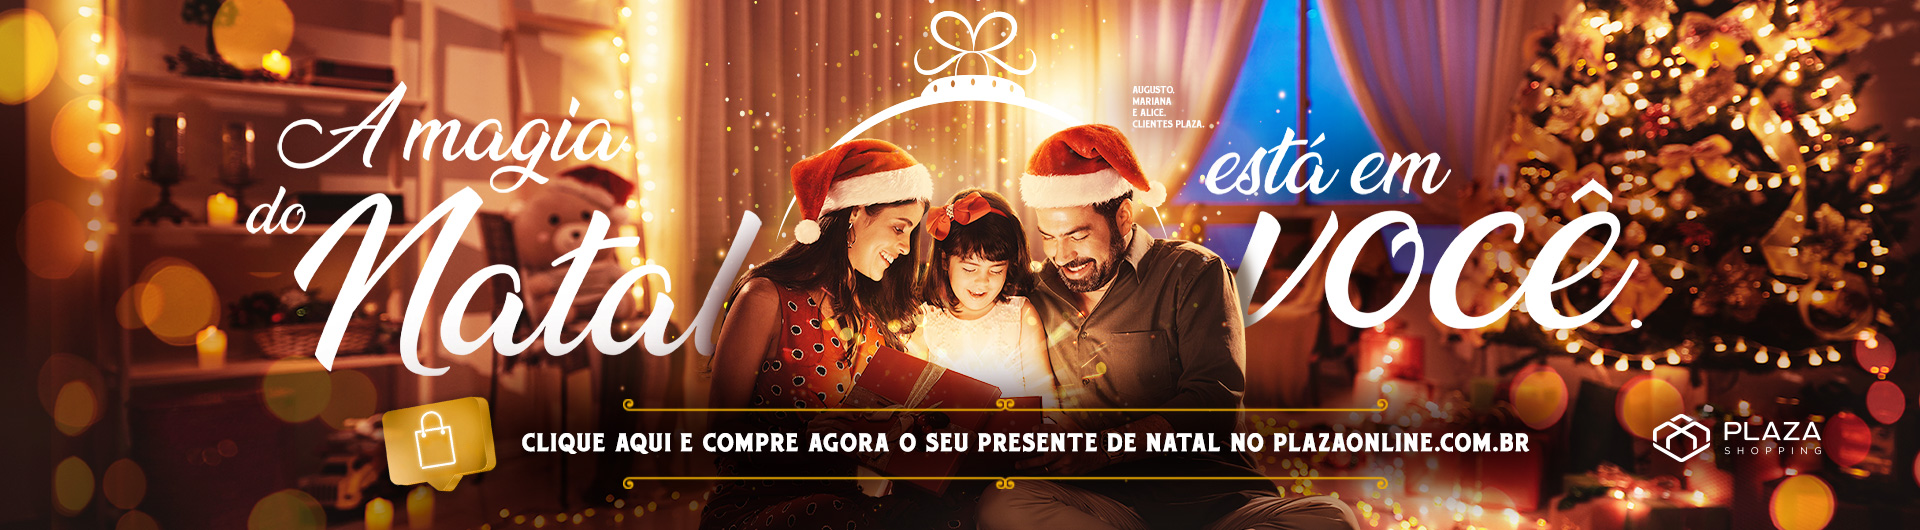 A Magia do Natal chegou ao Plaza!